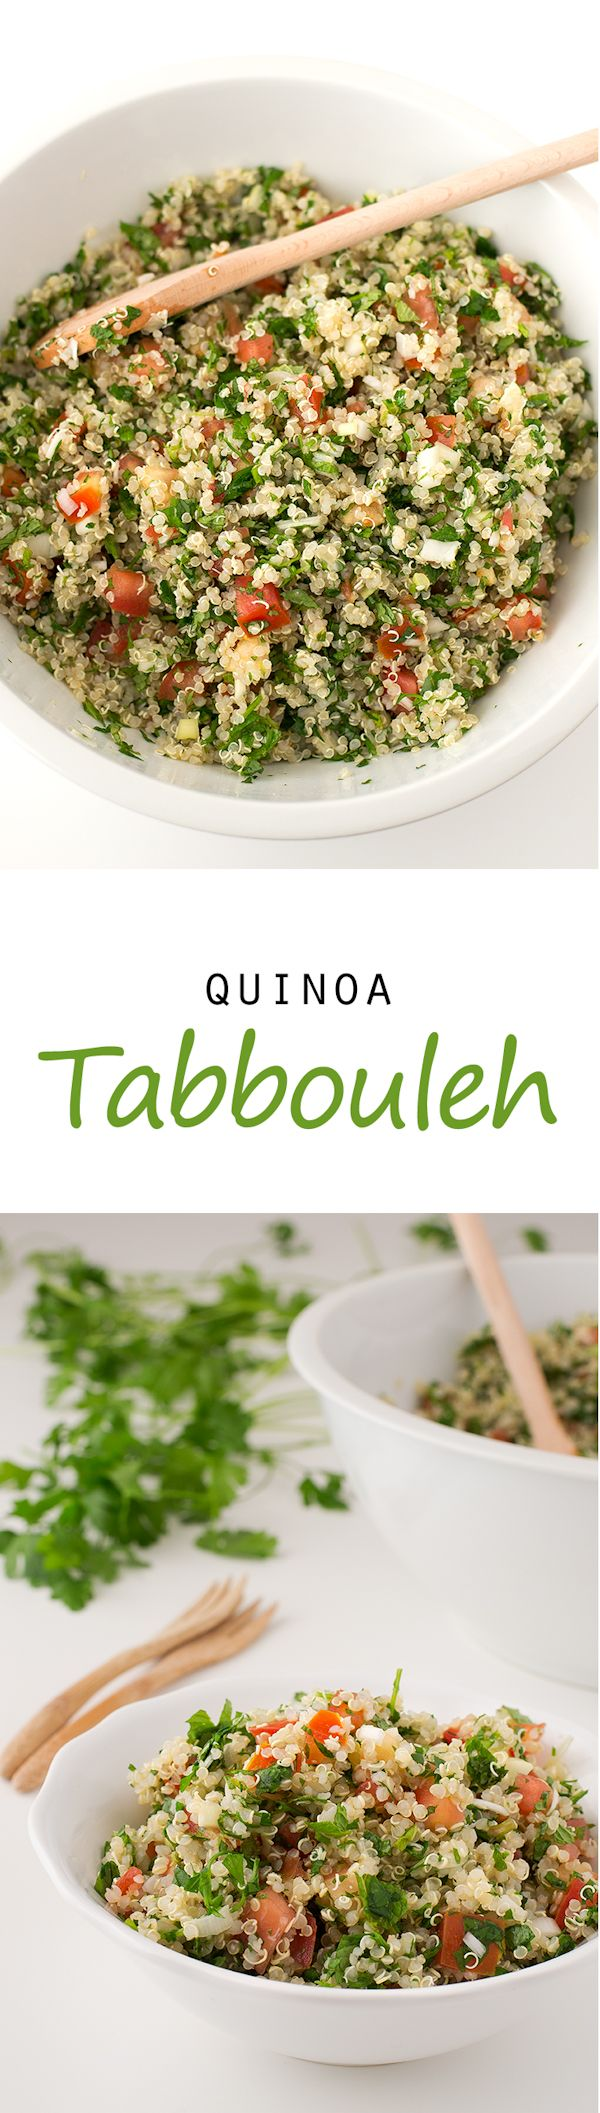 Lunch Recipe: Quinoa Tabbouleh #vegan #healthy #plantbased #whatveganseat #recipes #glutenfree #lunch